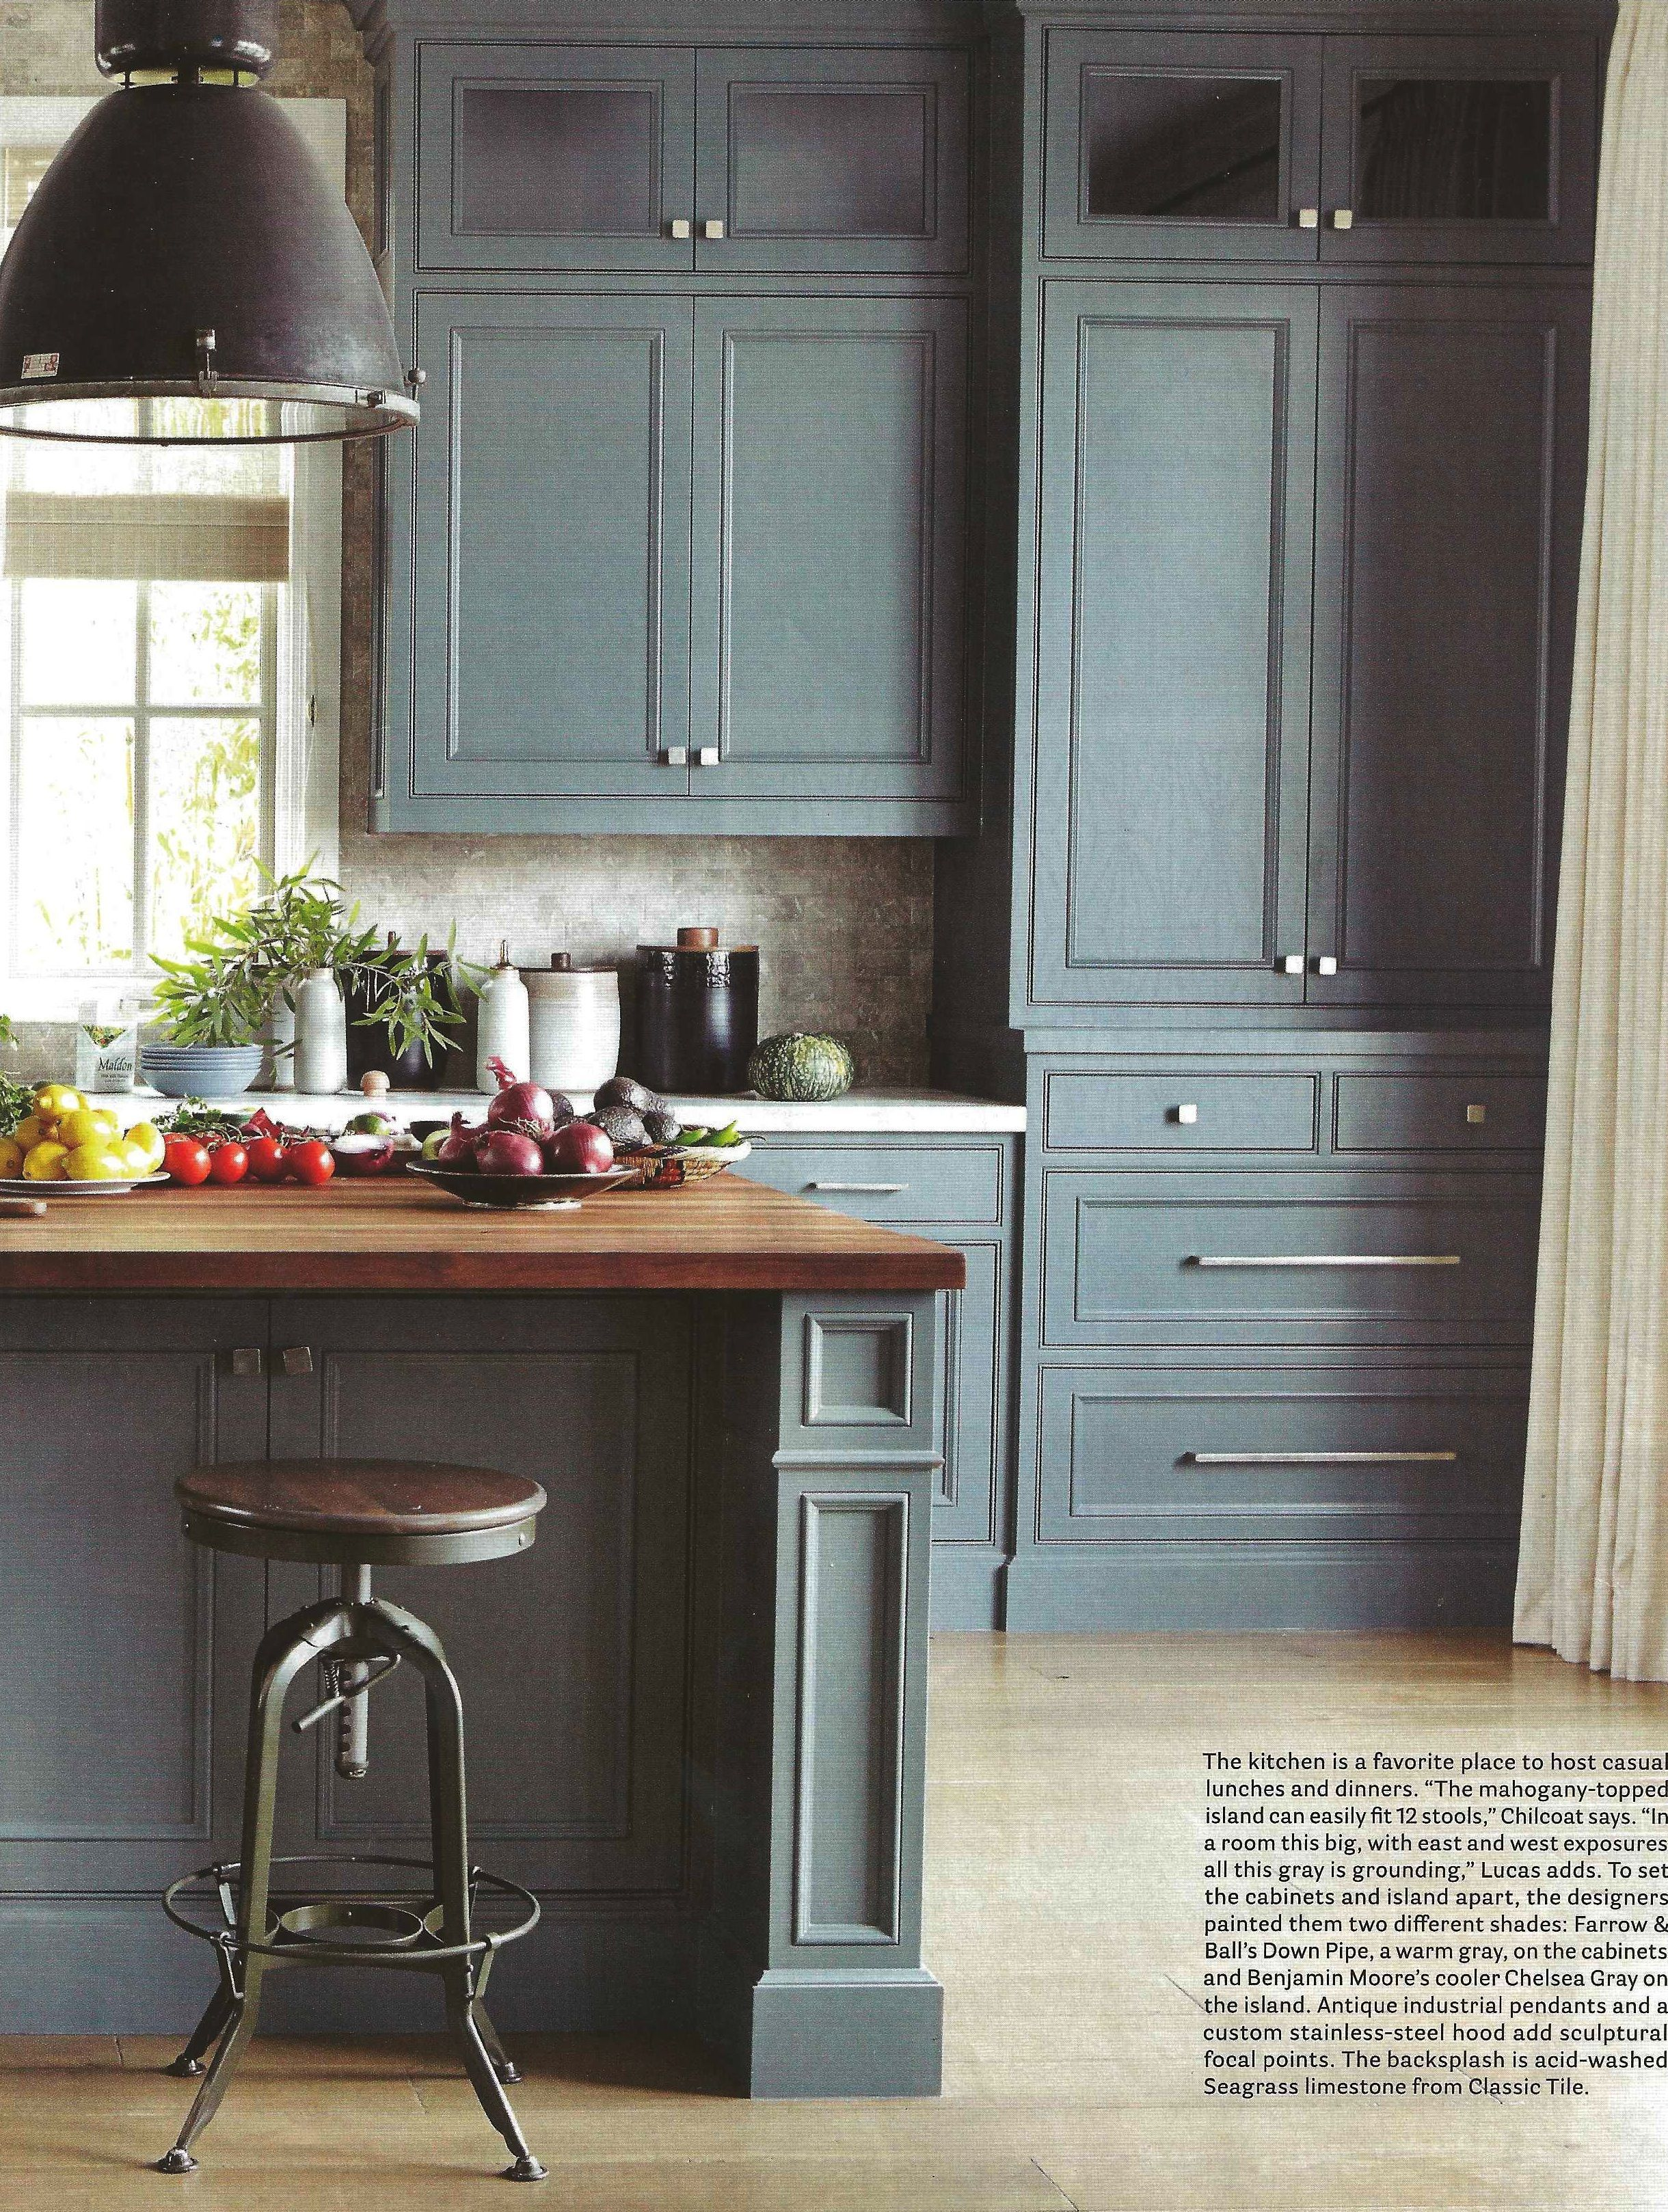 Gray kitchen - Farrow and Ball Down Pipe on the cabinets and Benjam ...